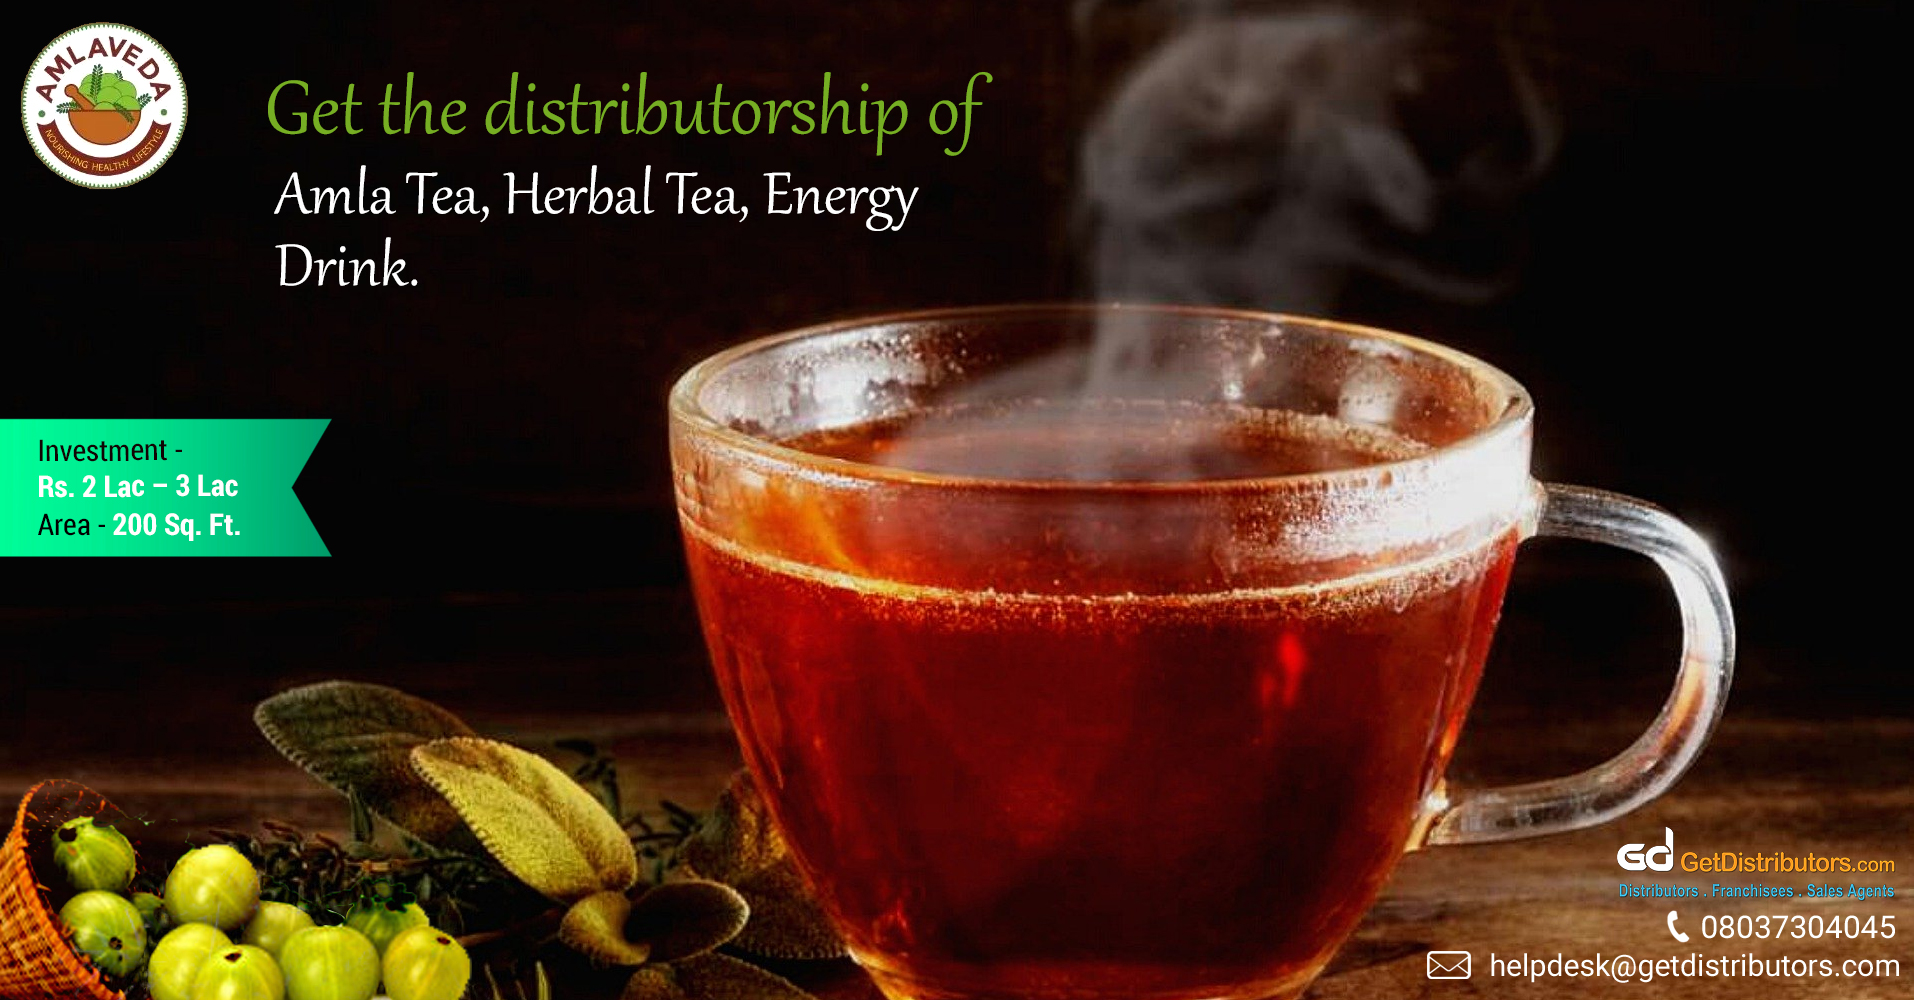 Amla tea, amla juice, and allied products at pocket-friendly rates